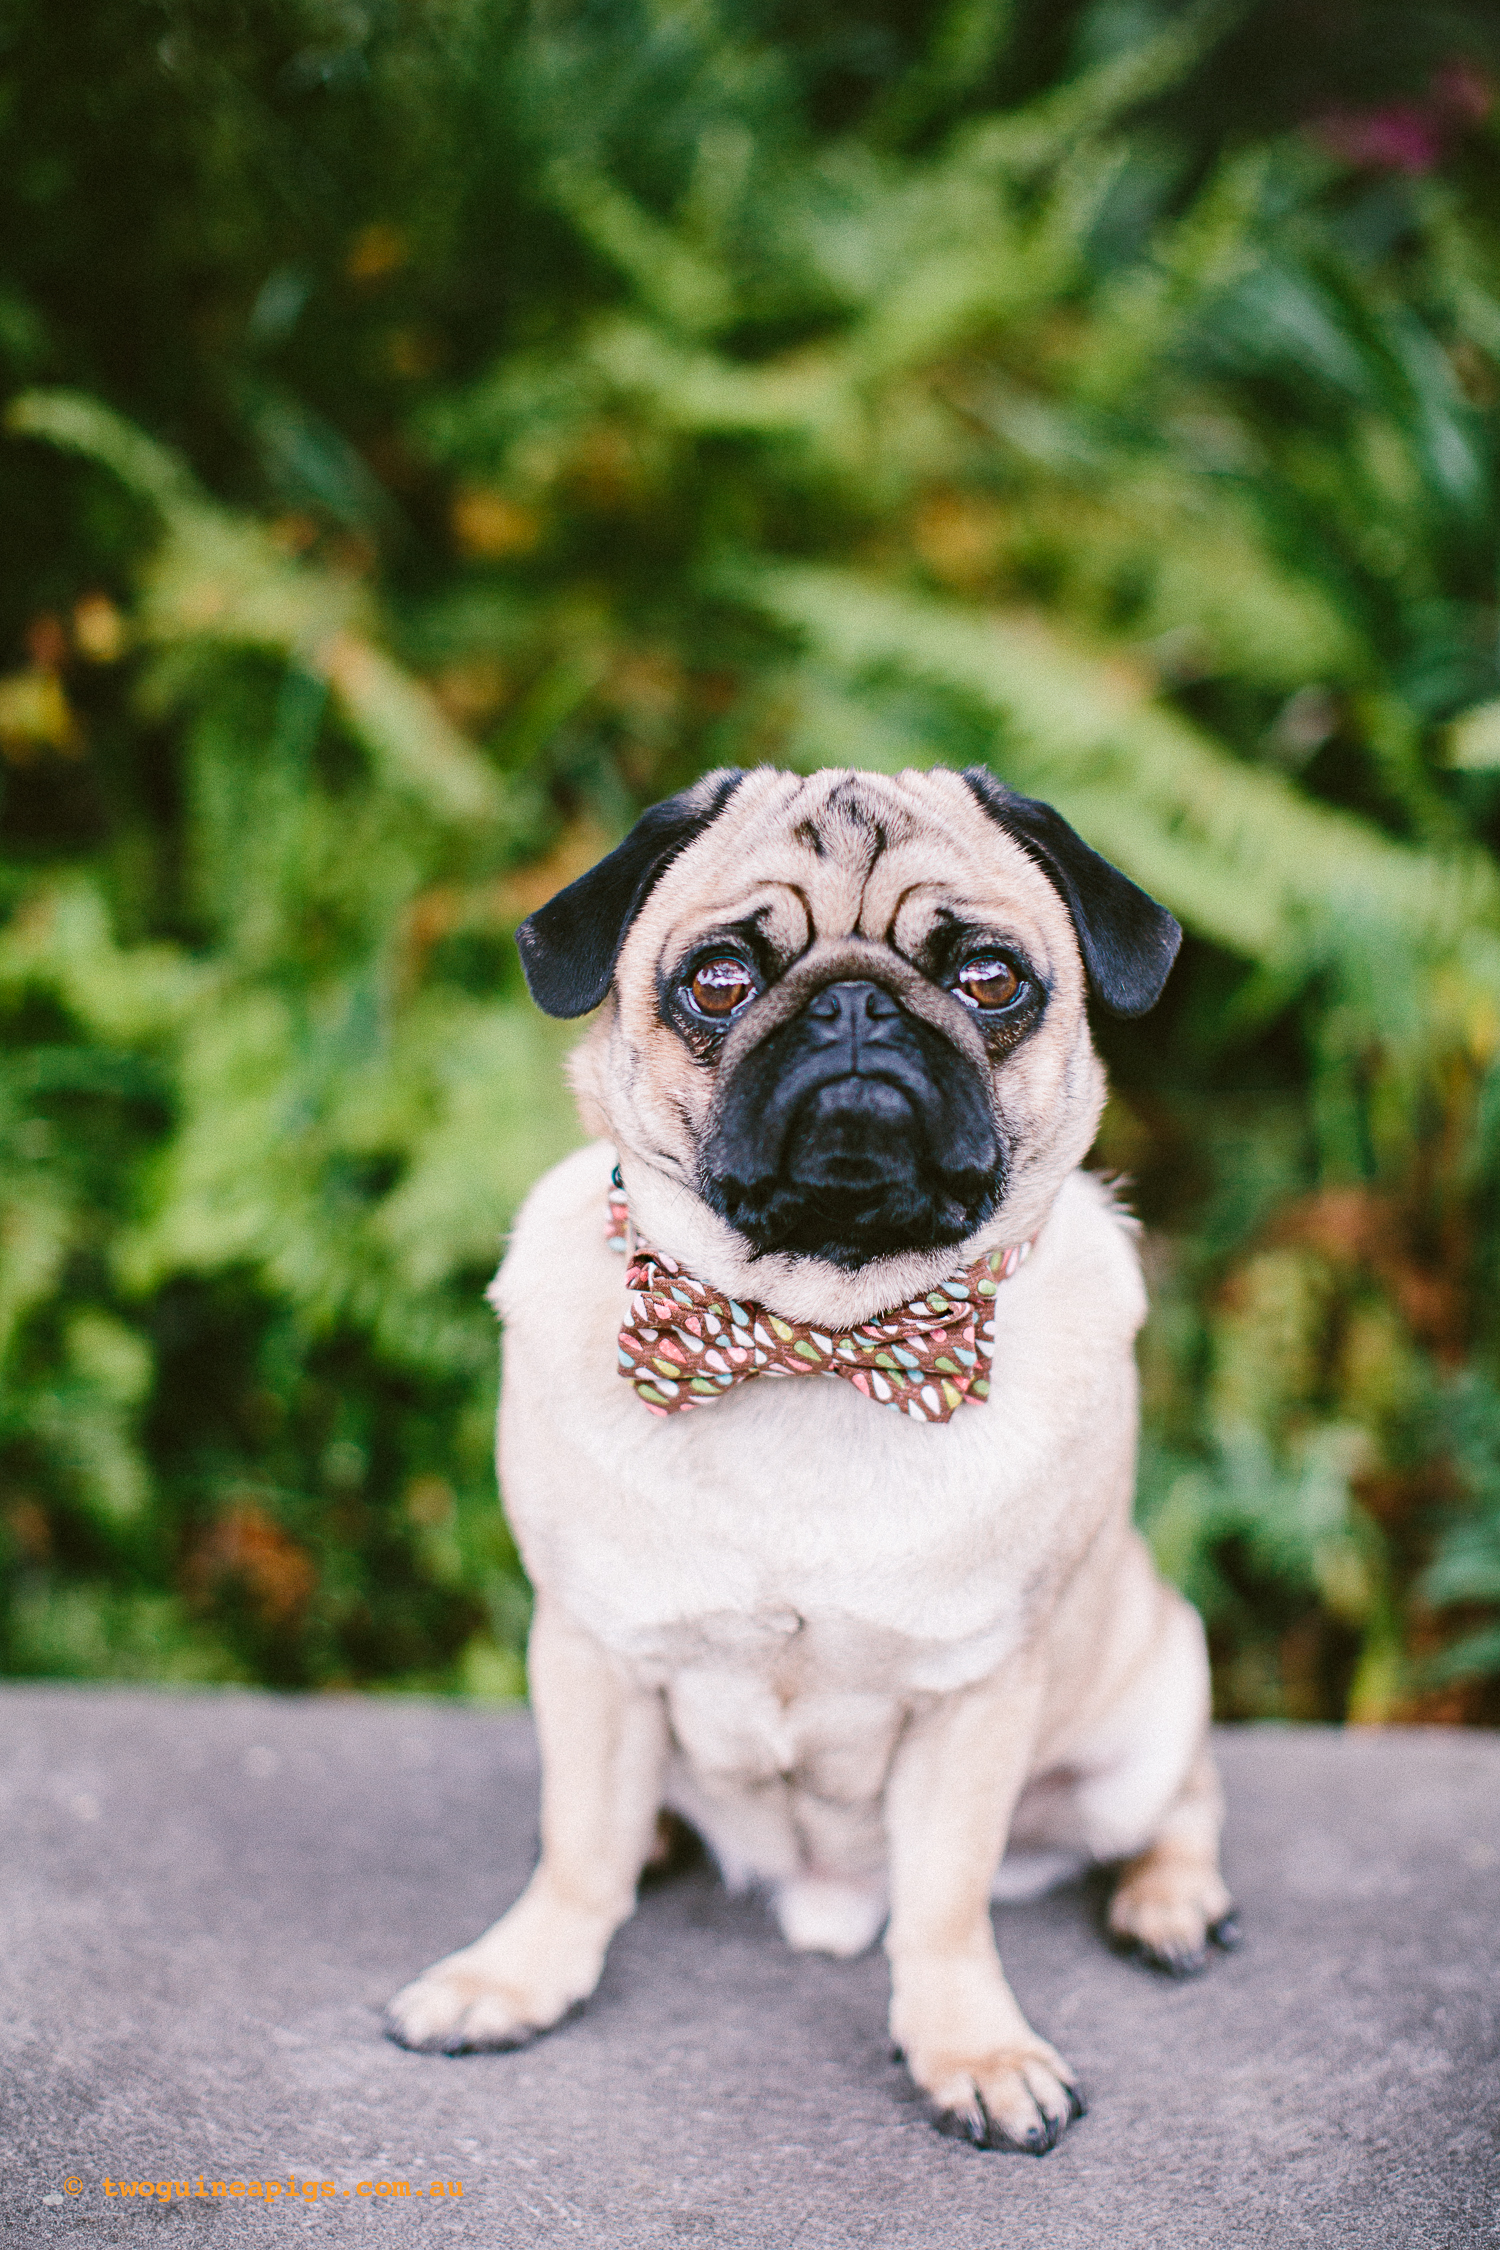 twoguineapigs_pet_photography_oh_jaffa_picnic_pugs_rodger_1500-28.jpg